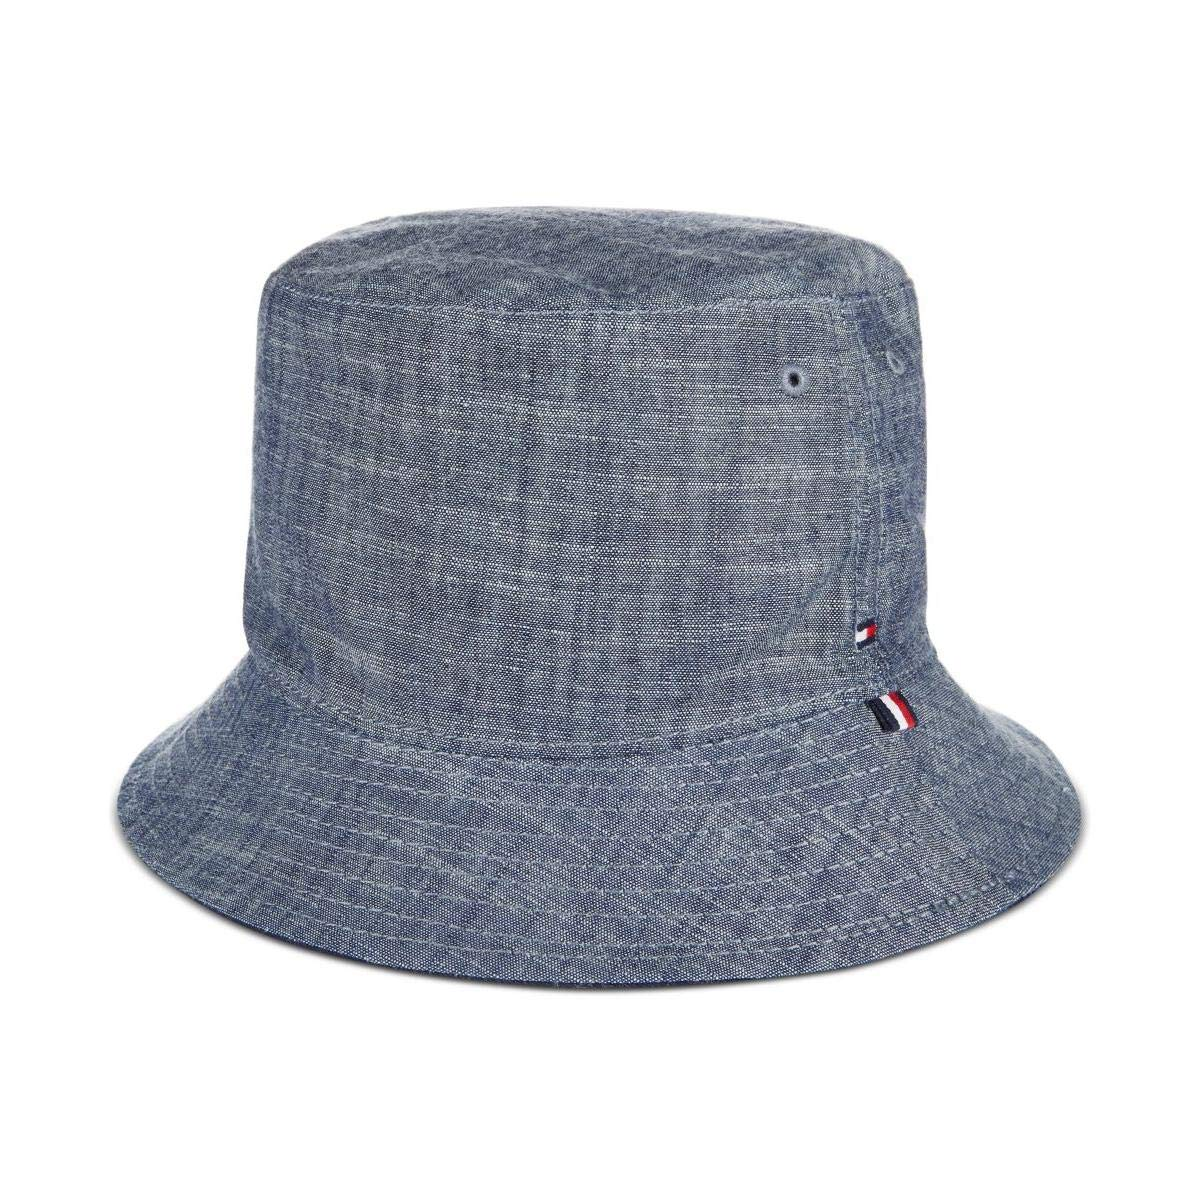 Tommy Hilfiger Mens Chambray Outdoor Bucket Hat Blue O S at Amazon Men s  Clothing store  a7ad36967b3